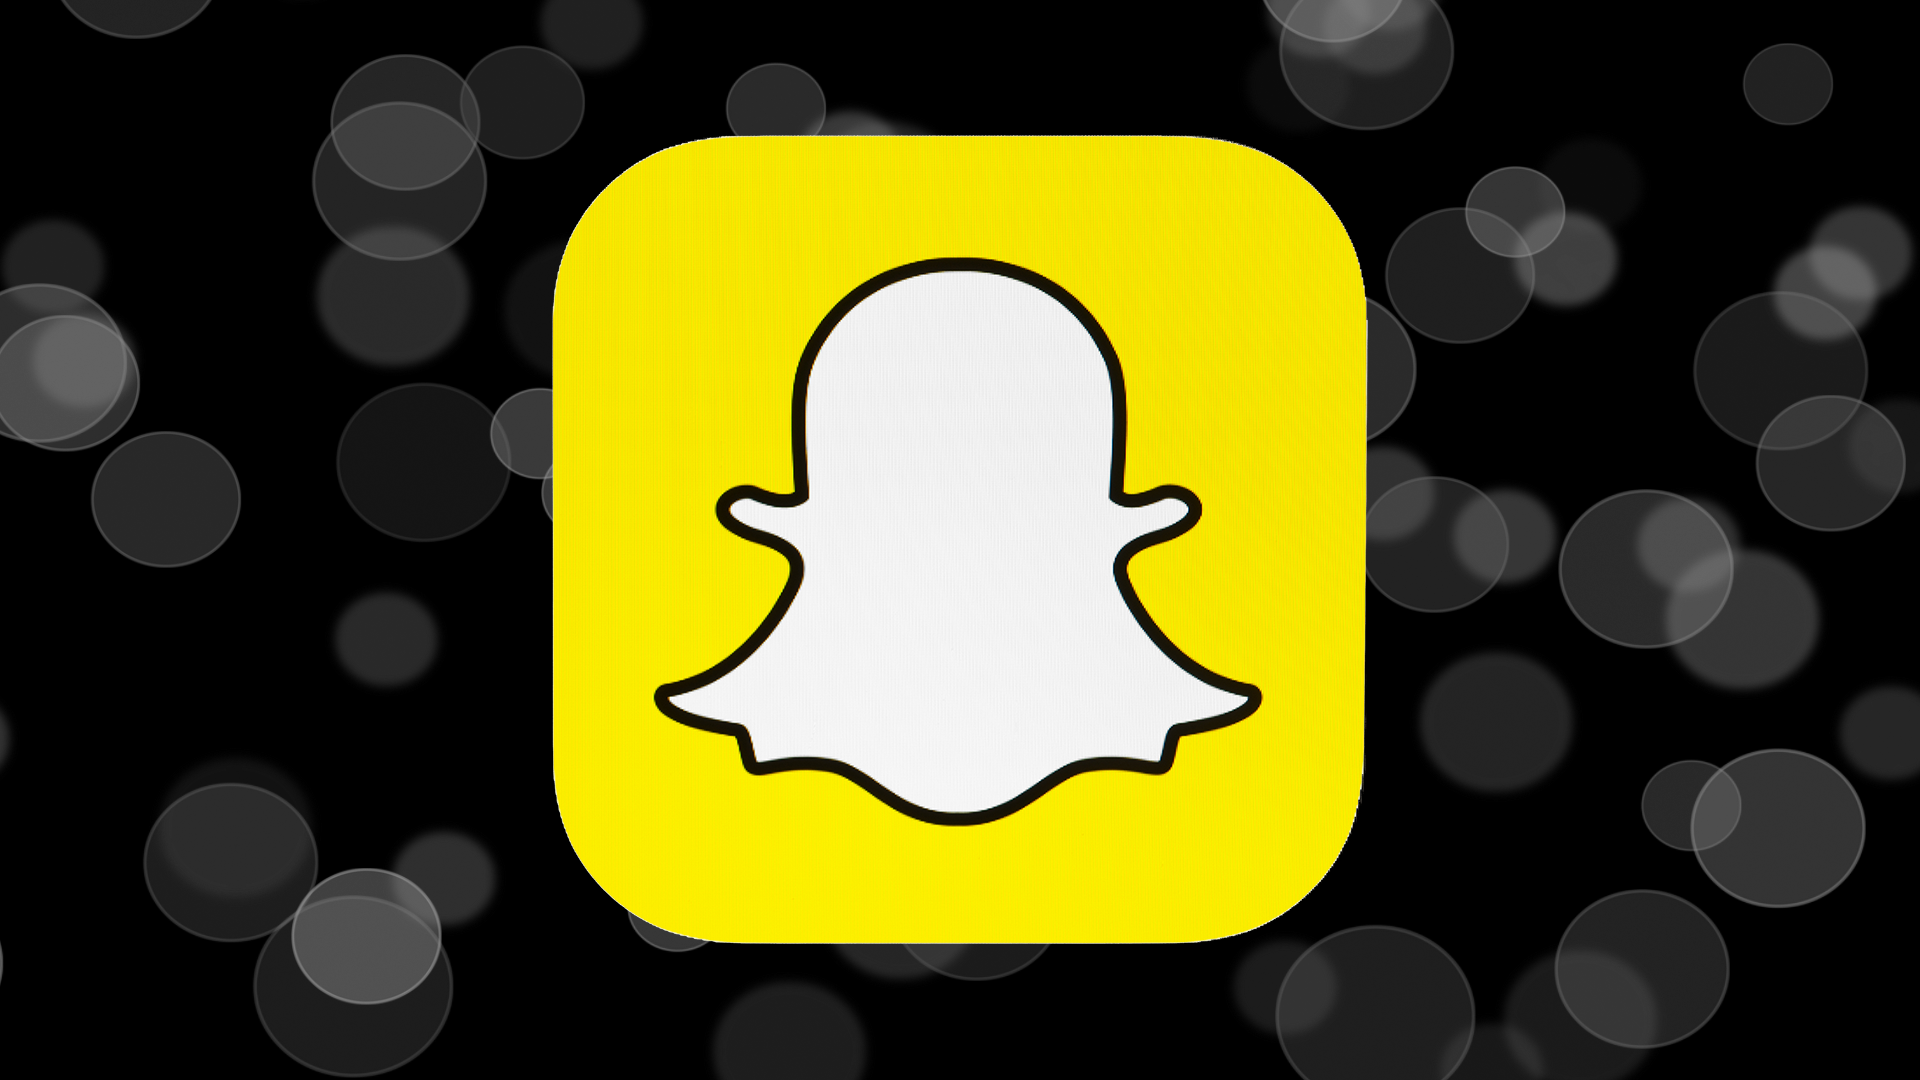 Apps similar to Snapchat